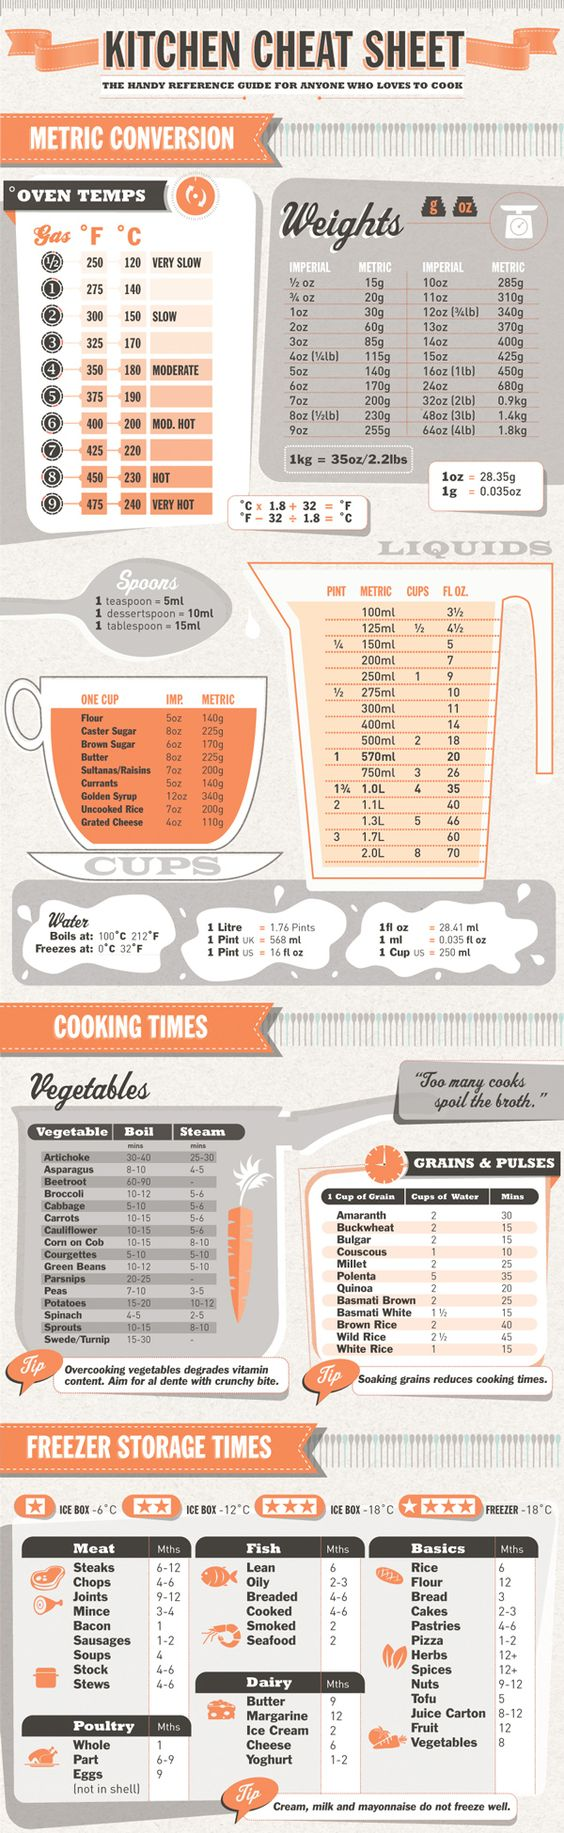 Metric equivalents for cooking and baking. By volume, weight or measure.: